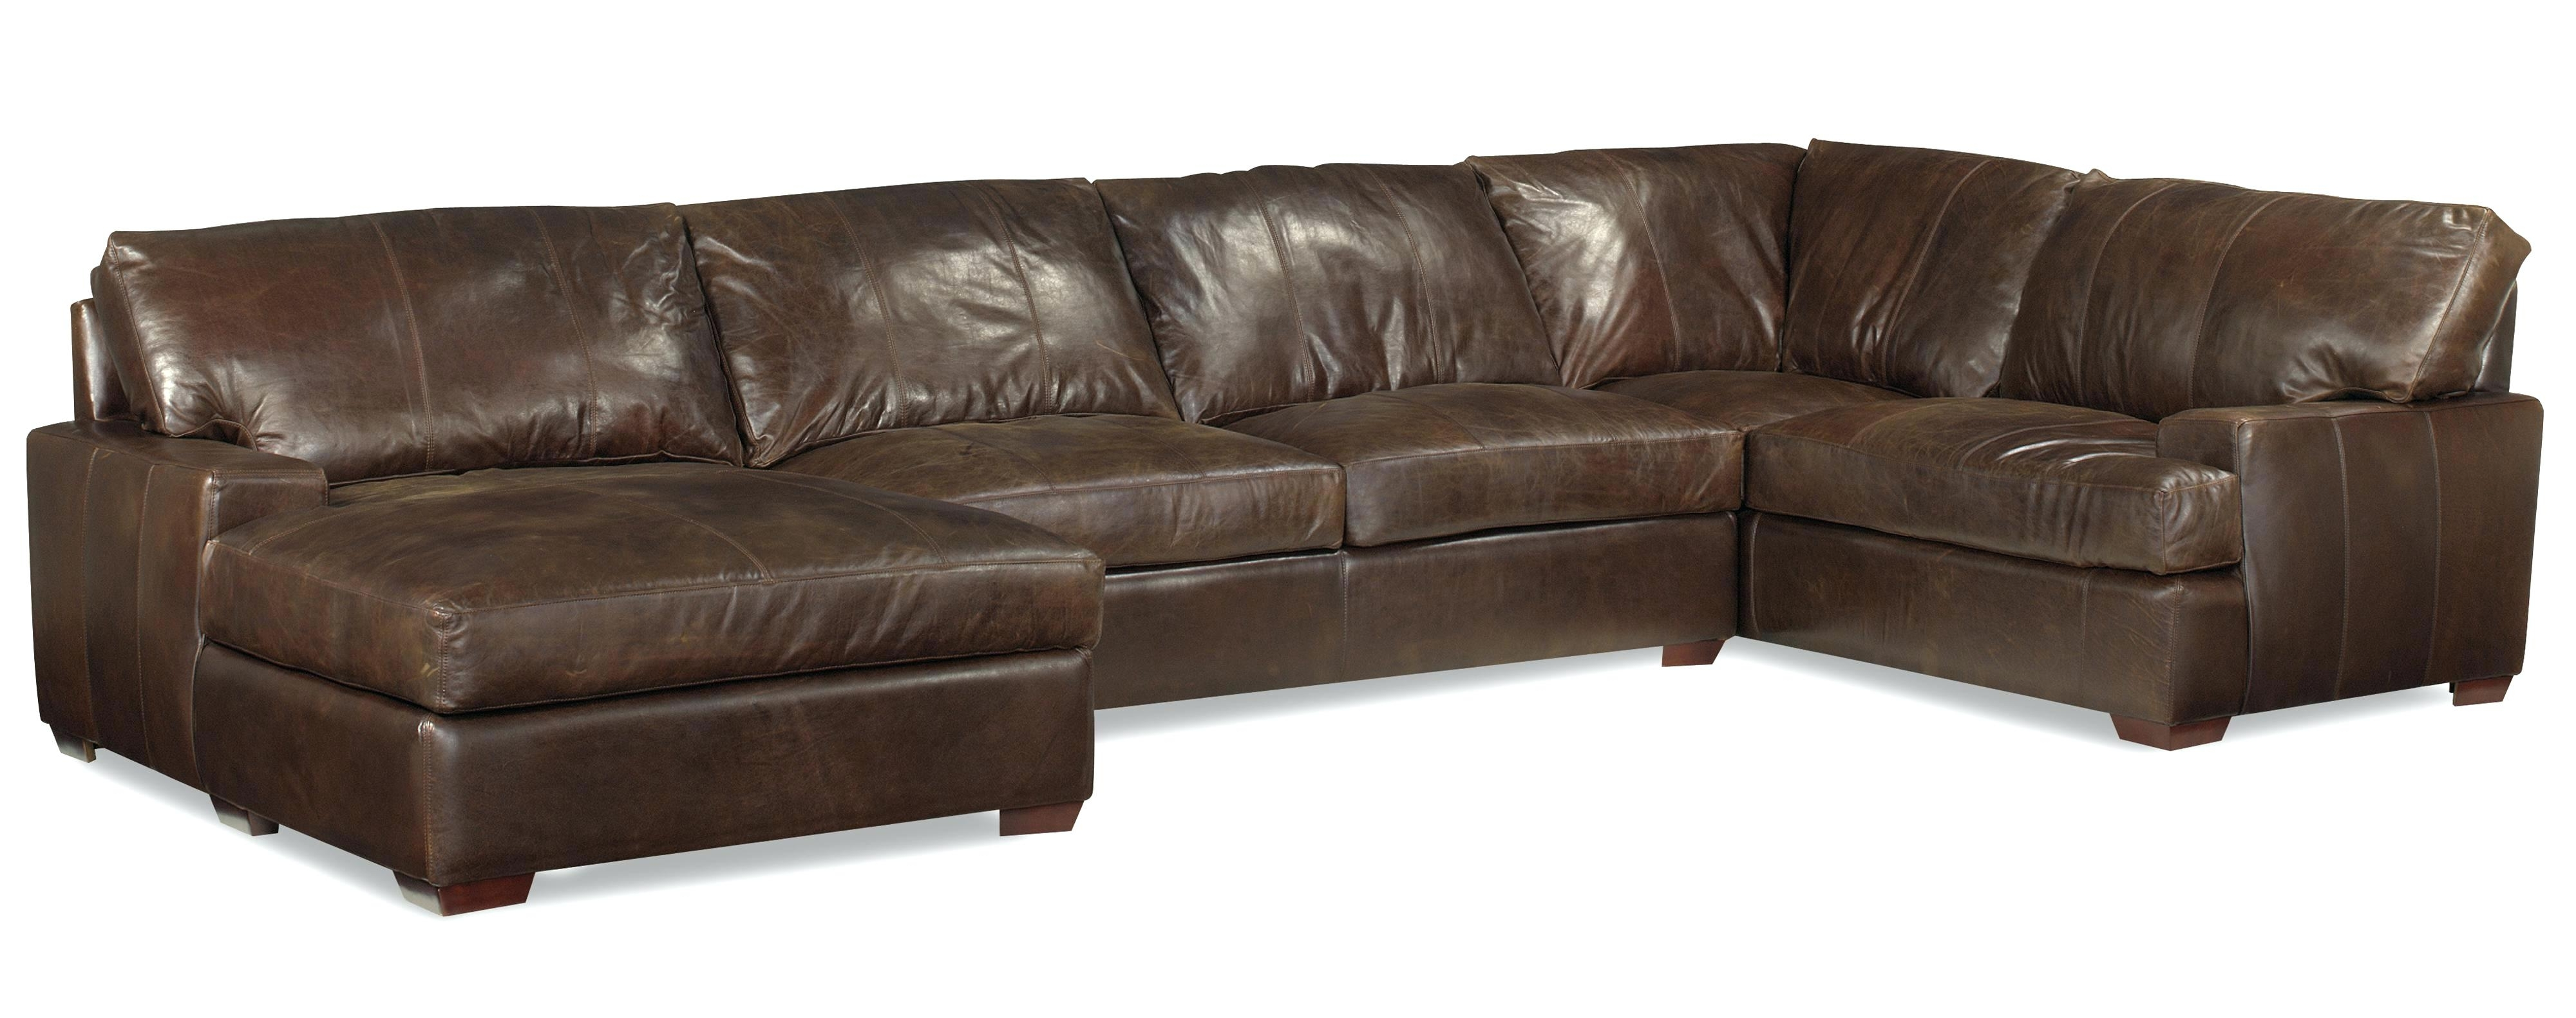 2018 Leather Sofa Chaise (View 1 of 15)